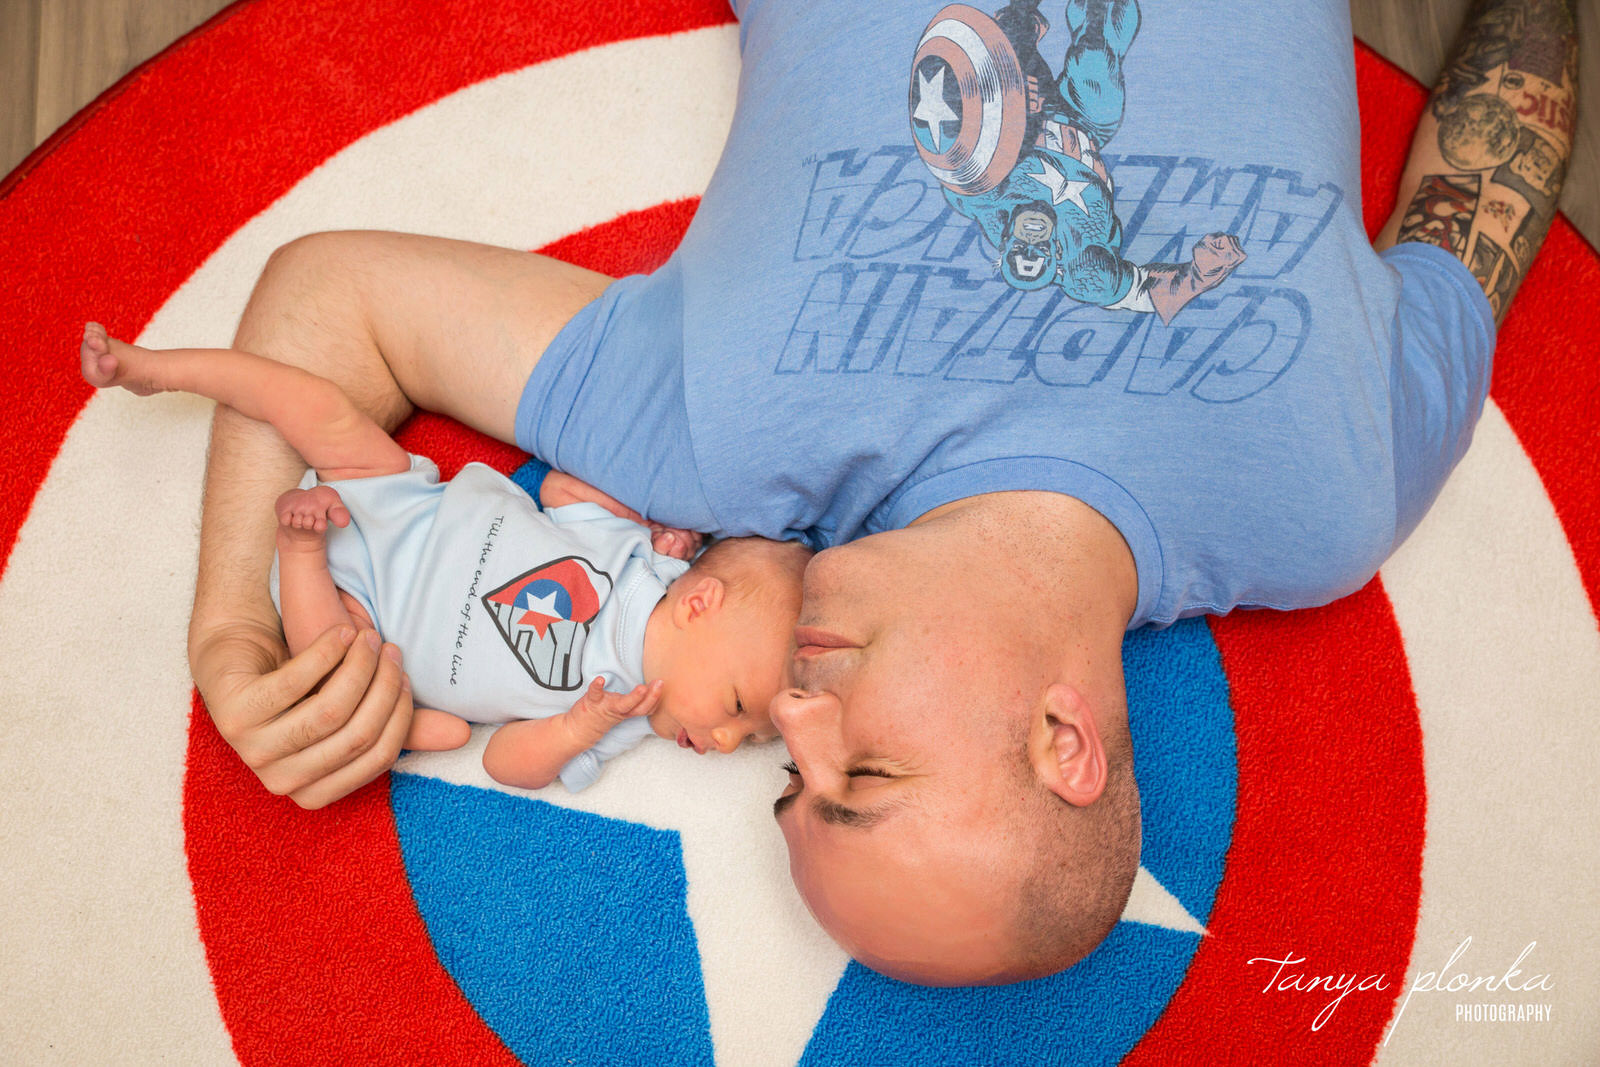 newborn baby with dad both in Captain America t-shirts lay on Captain America shield rug